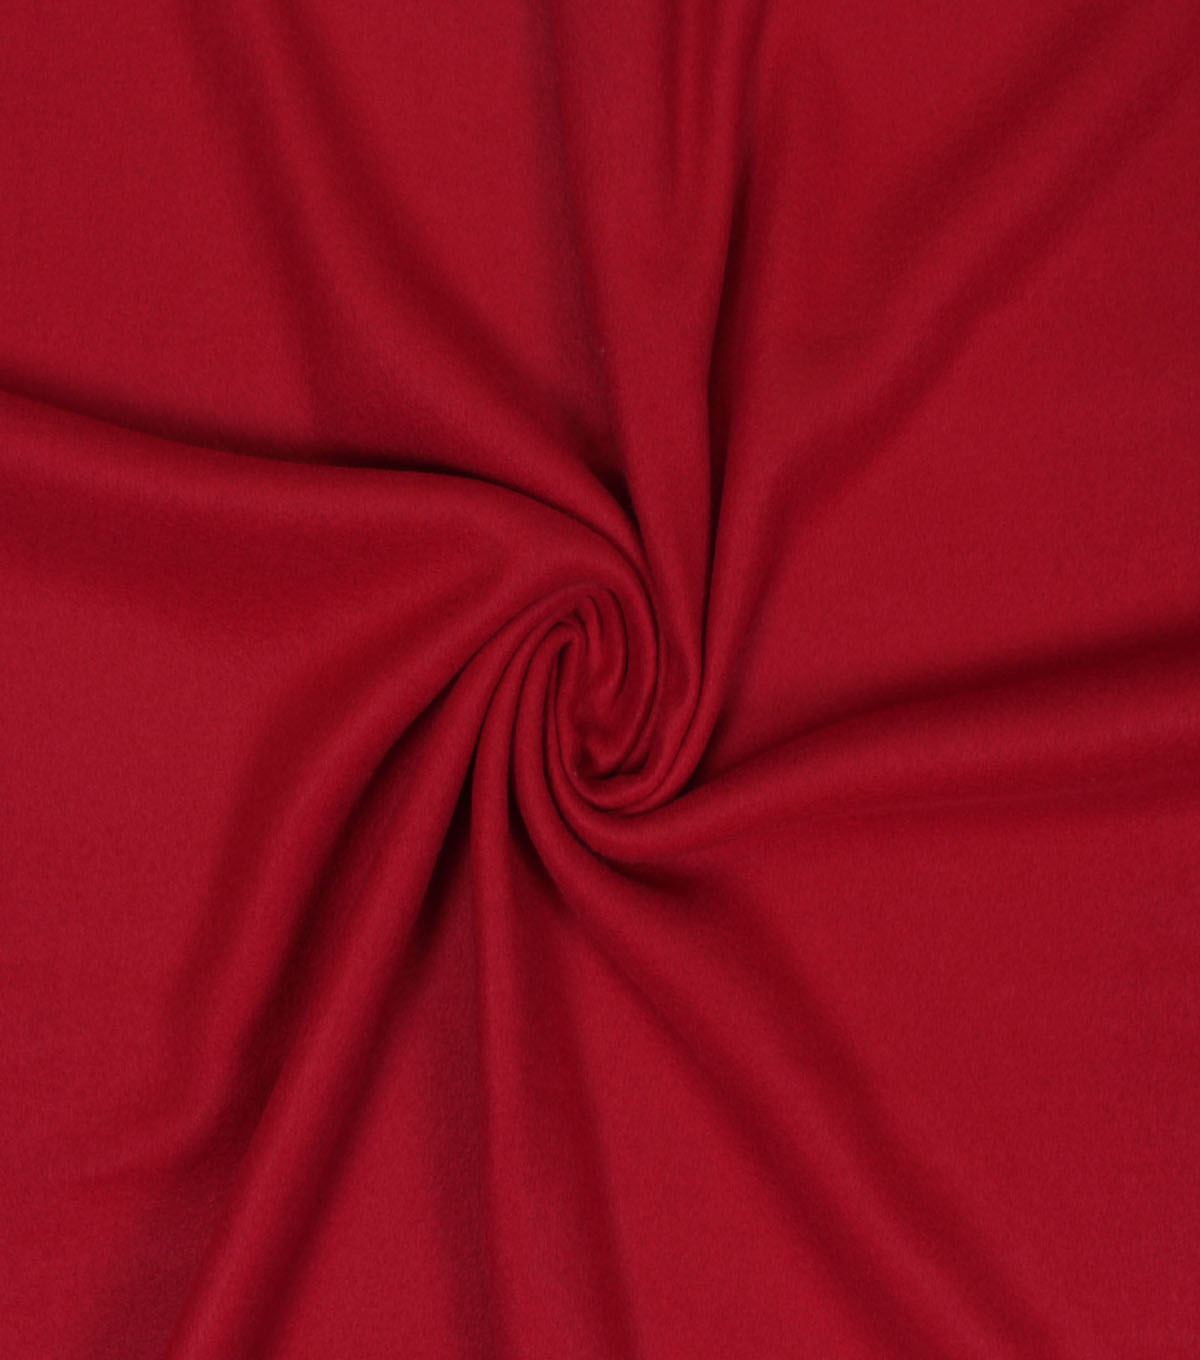 Blizzard Fleece Fabric -Solids, Rio Red